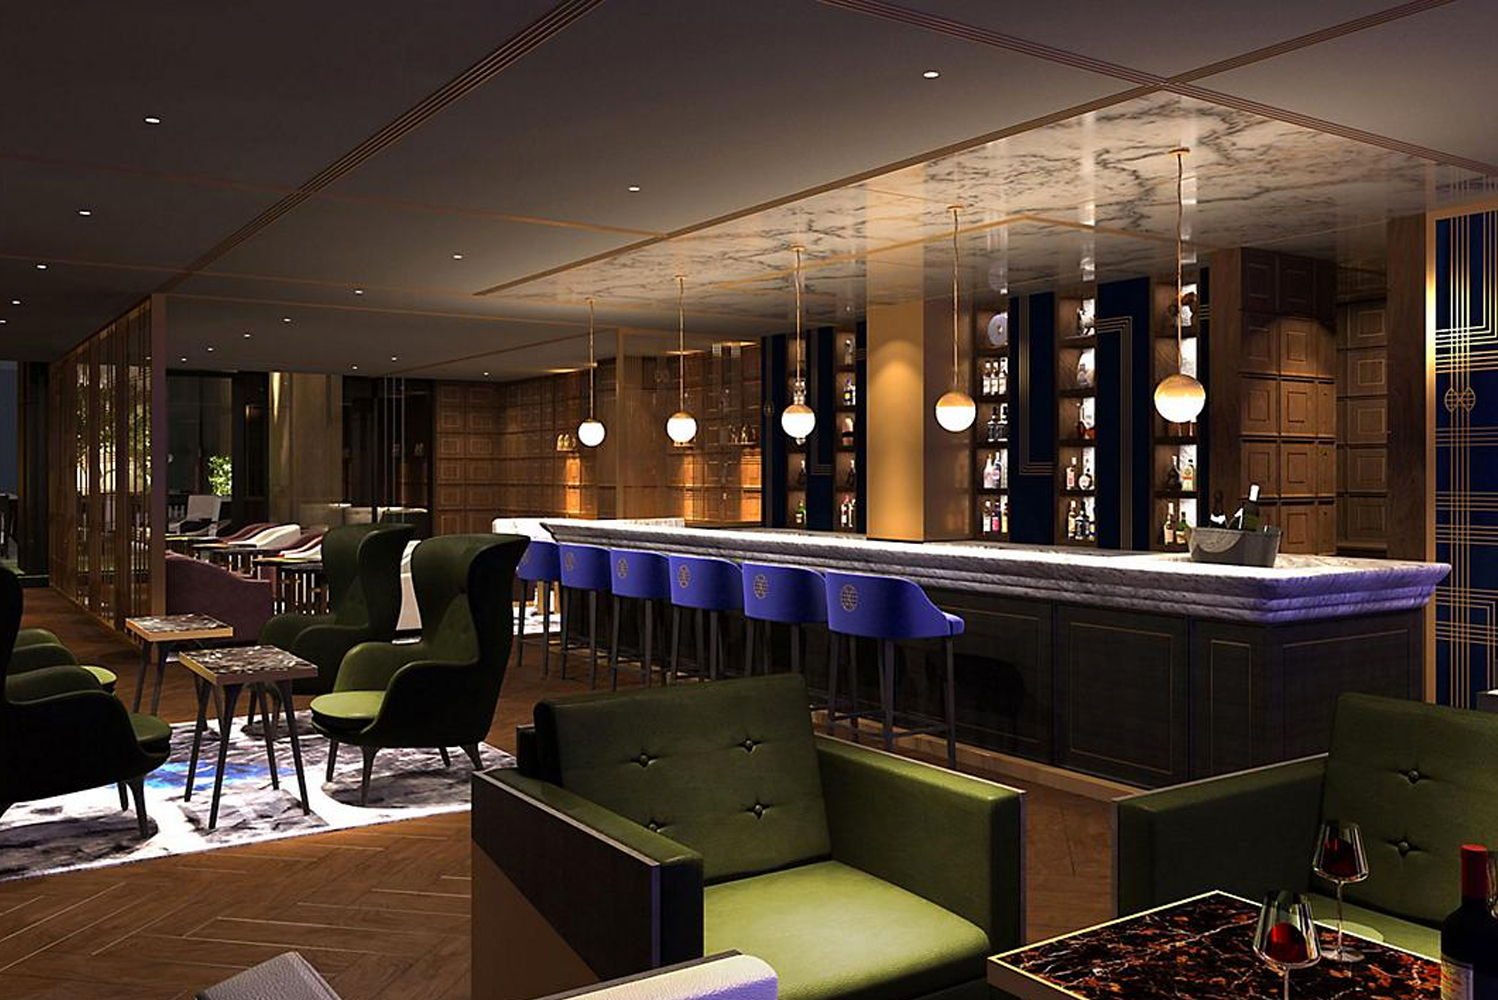 Mandarin Grill + Bar will have interiors by Adam Tihany.